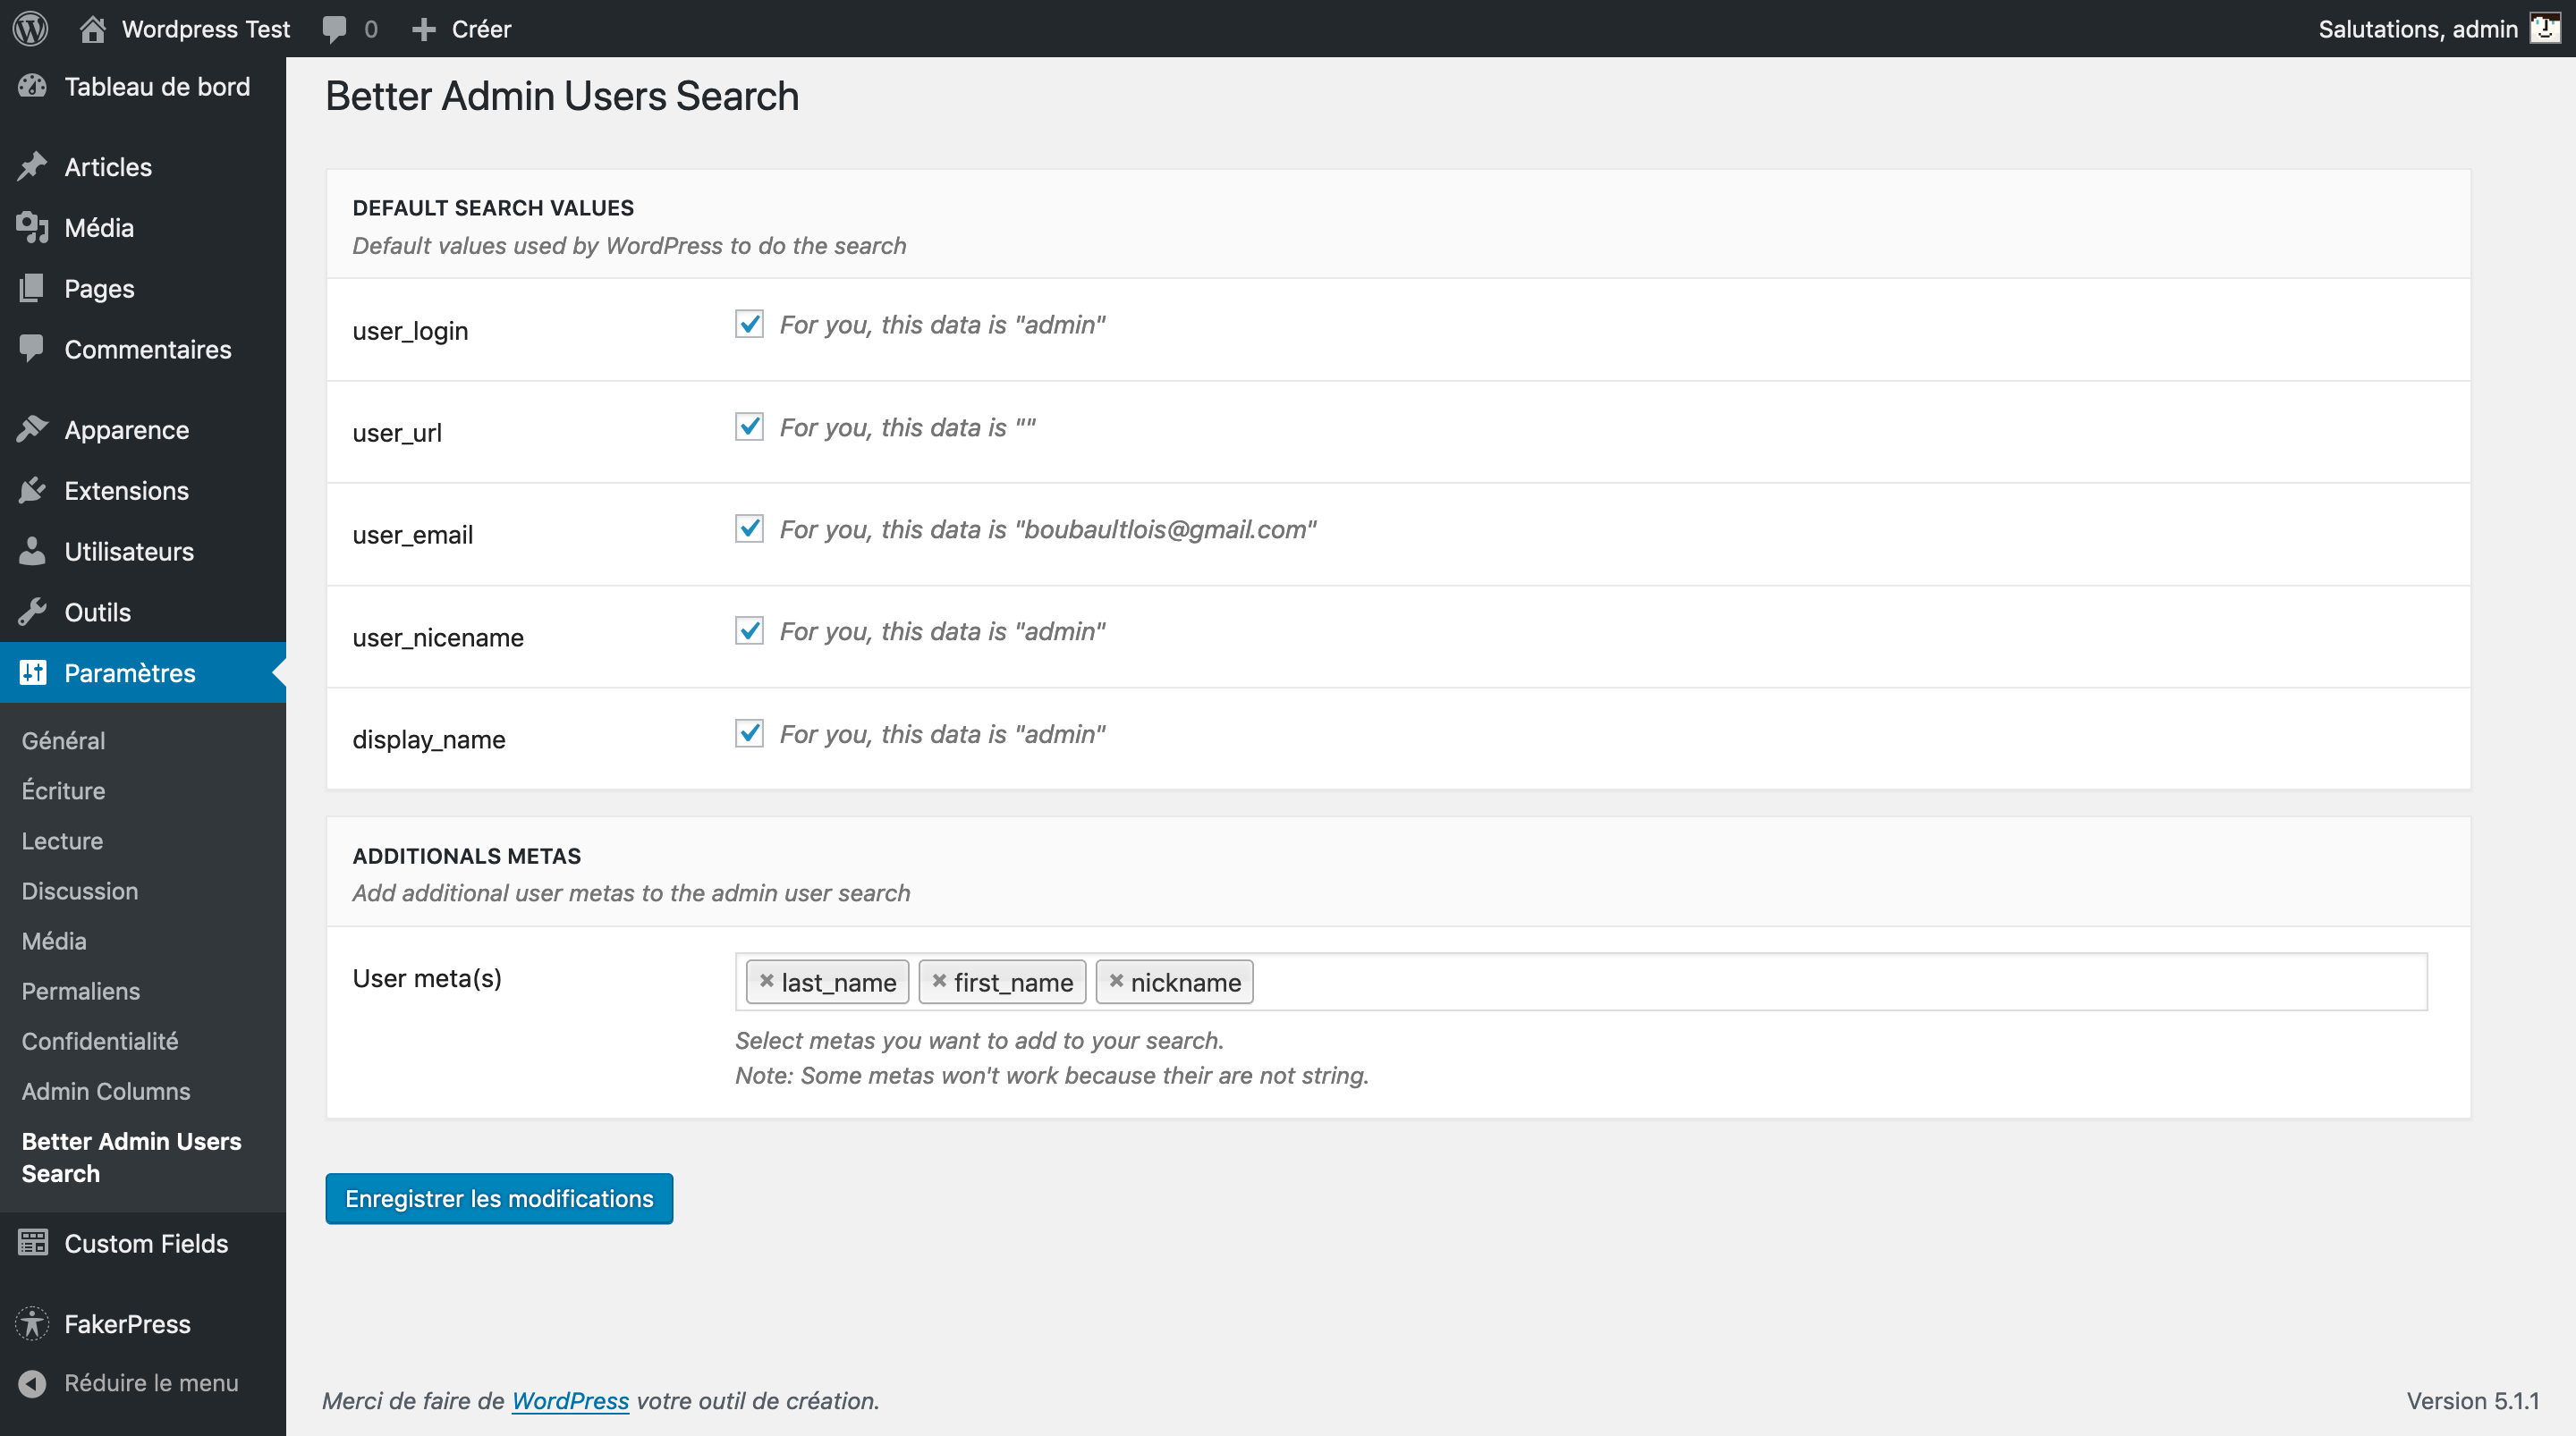 The Better Admin Users Search settings screen